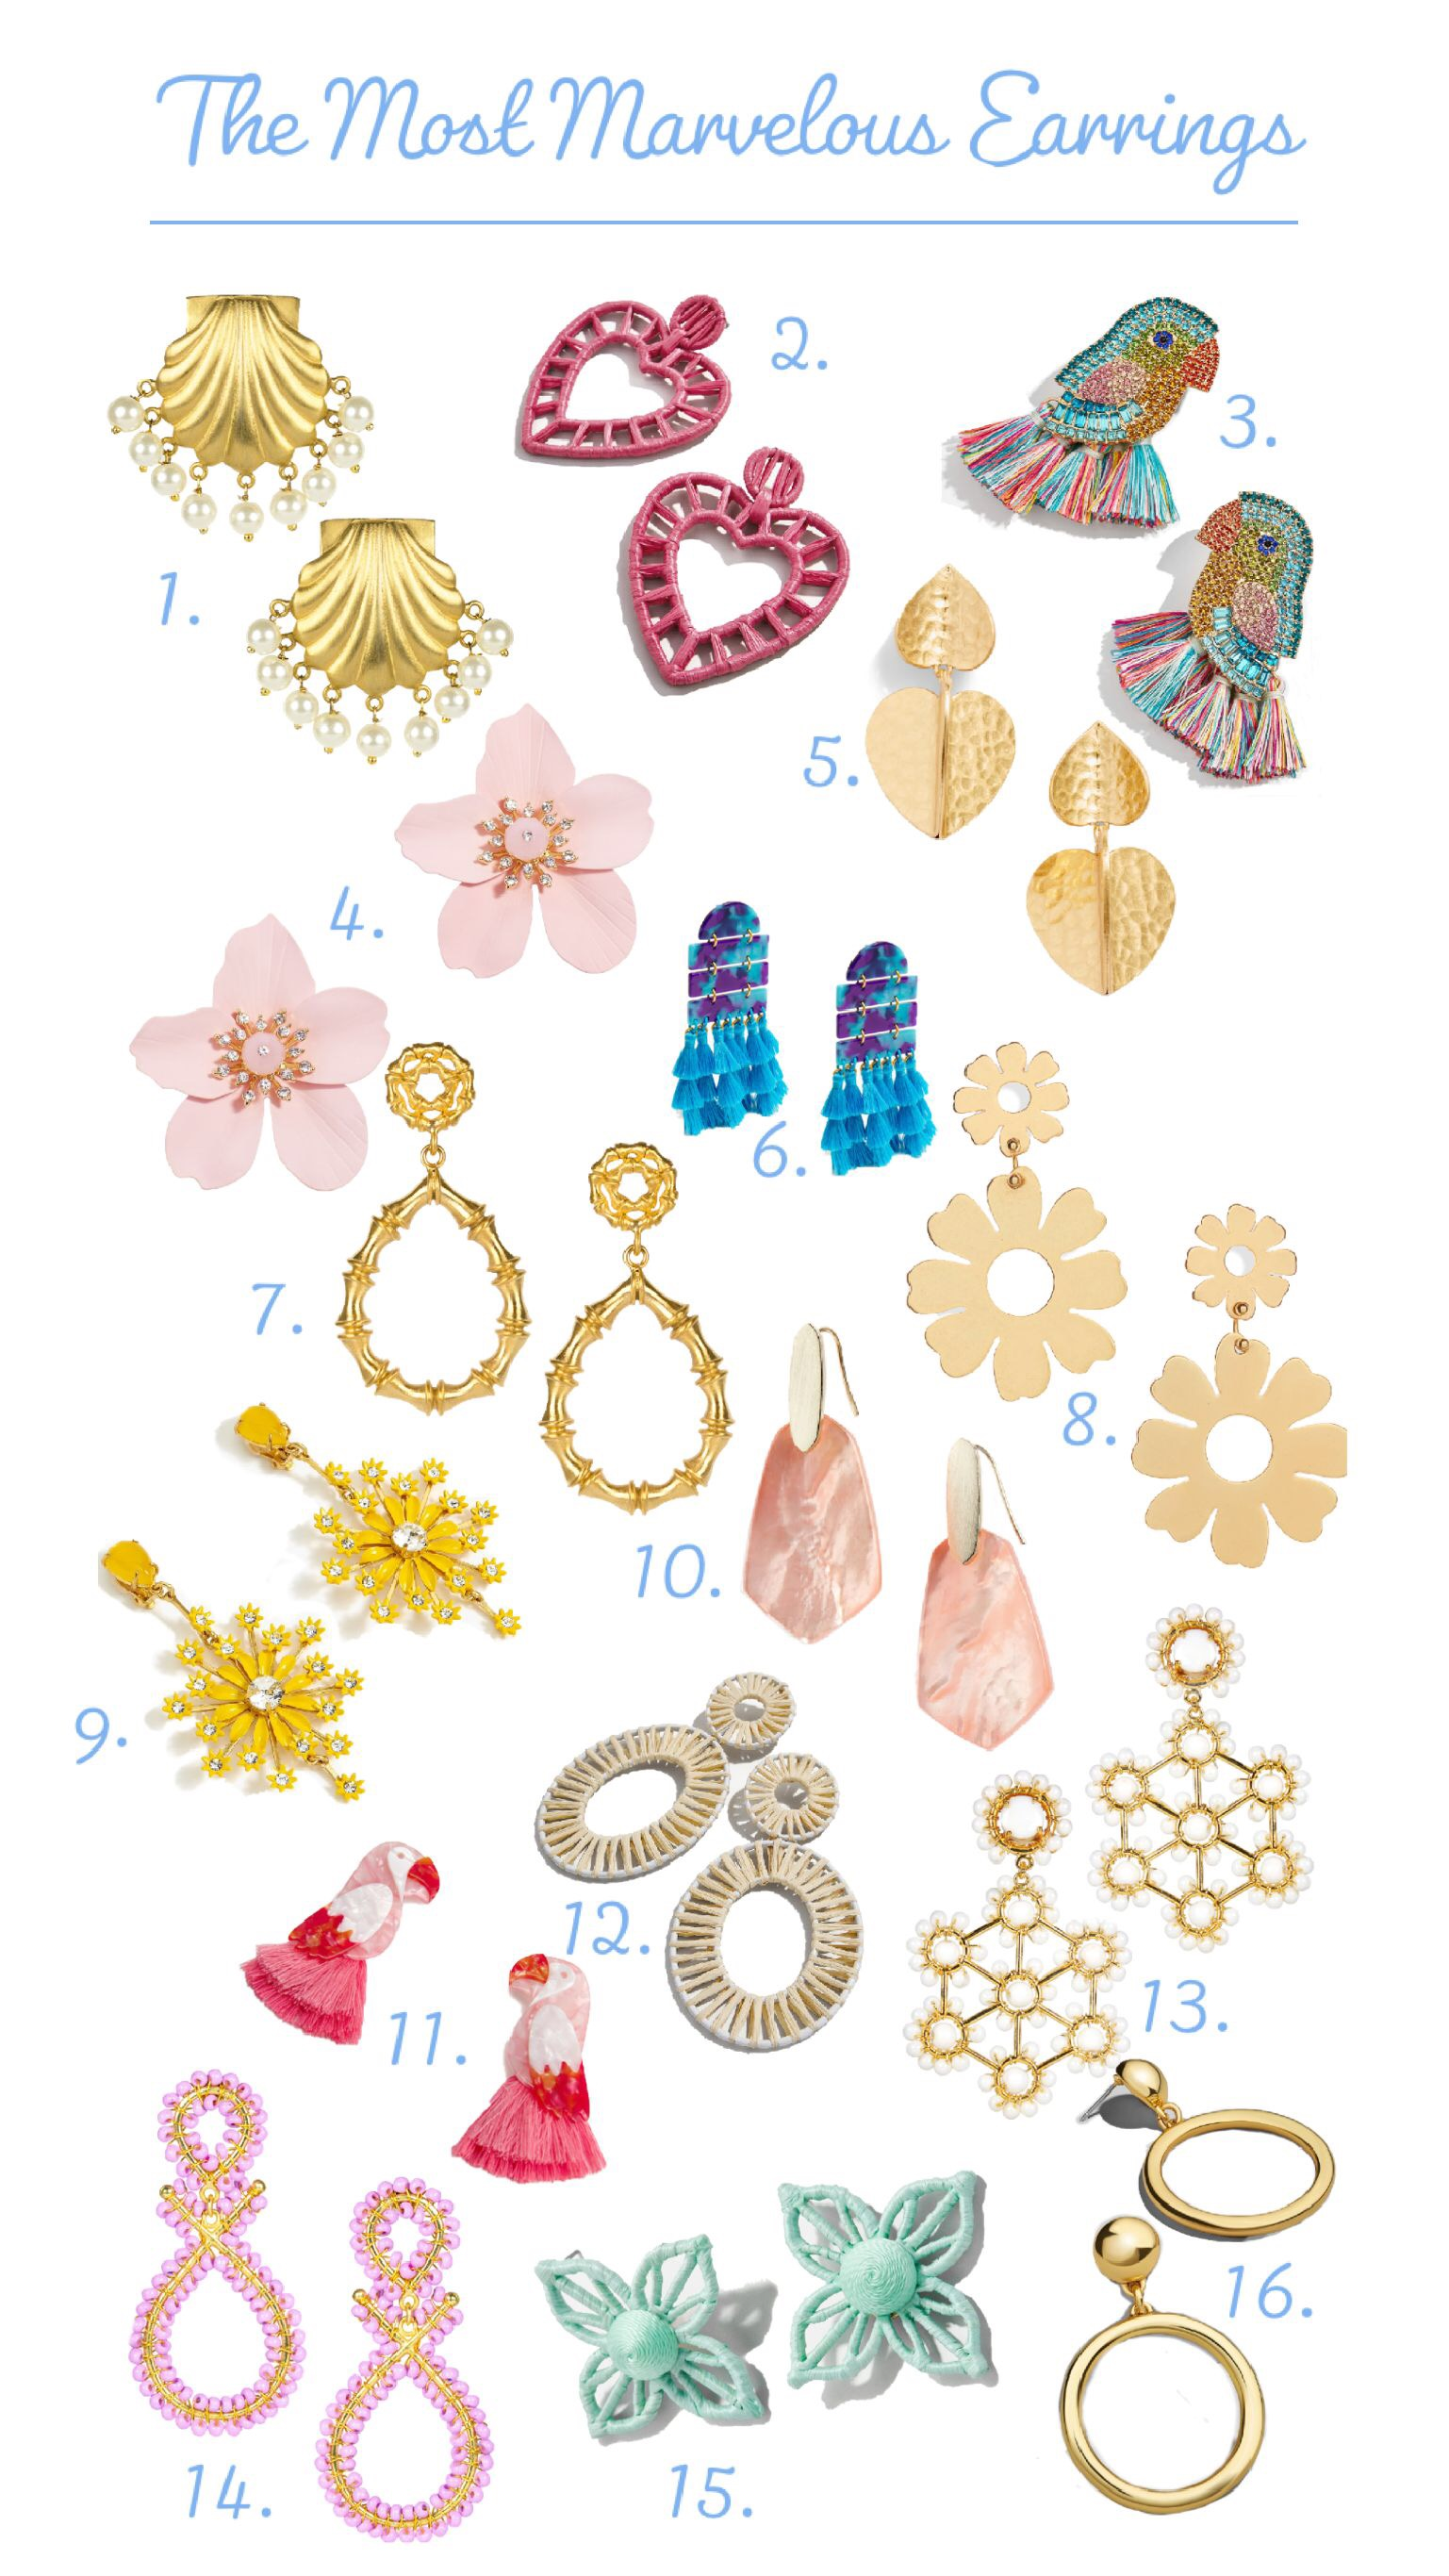 the most marvelous earrings